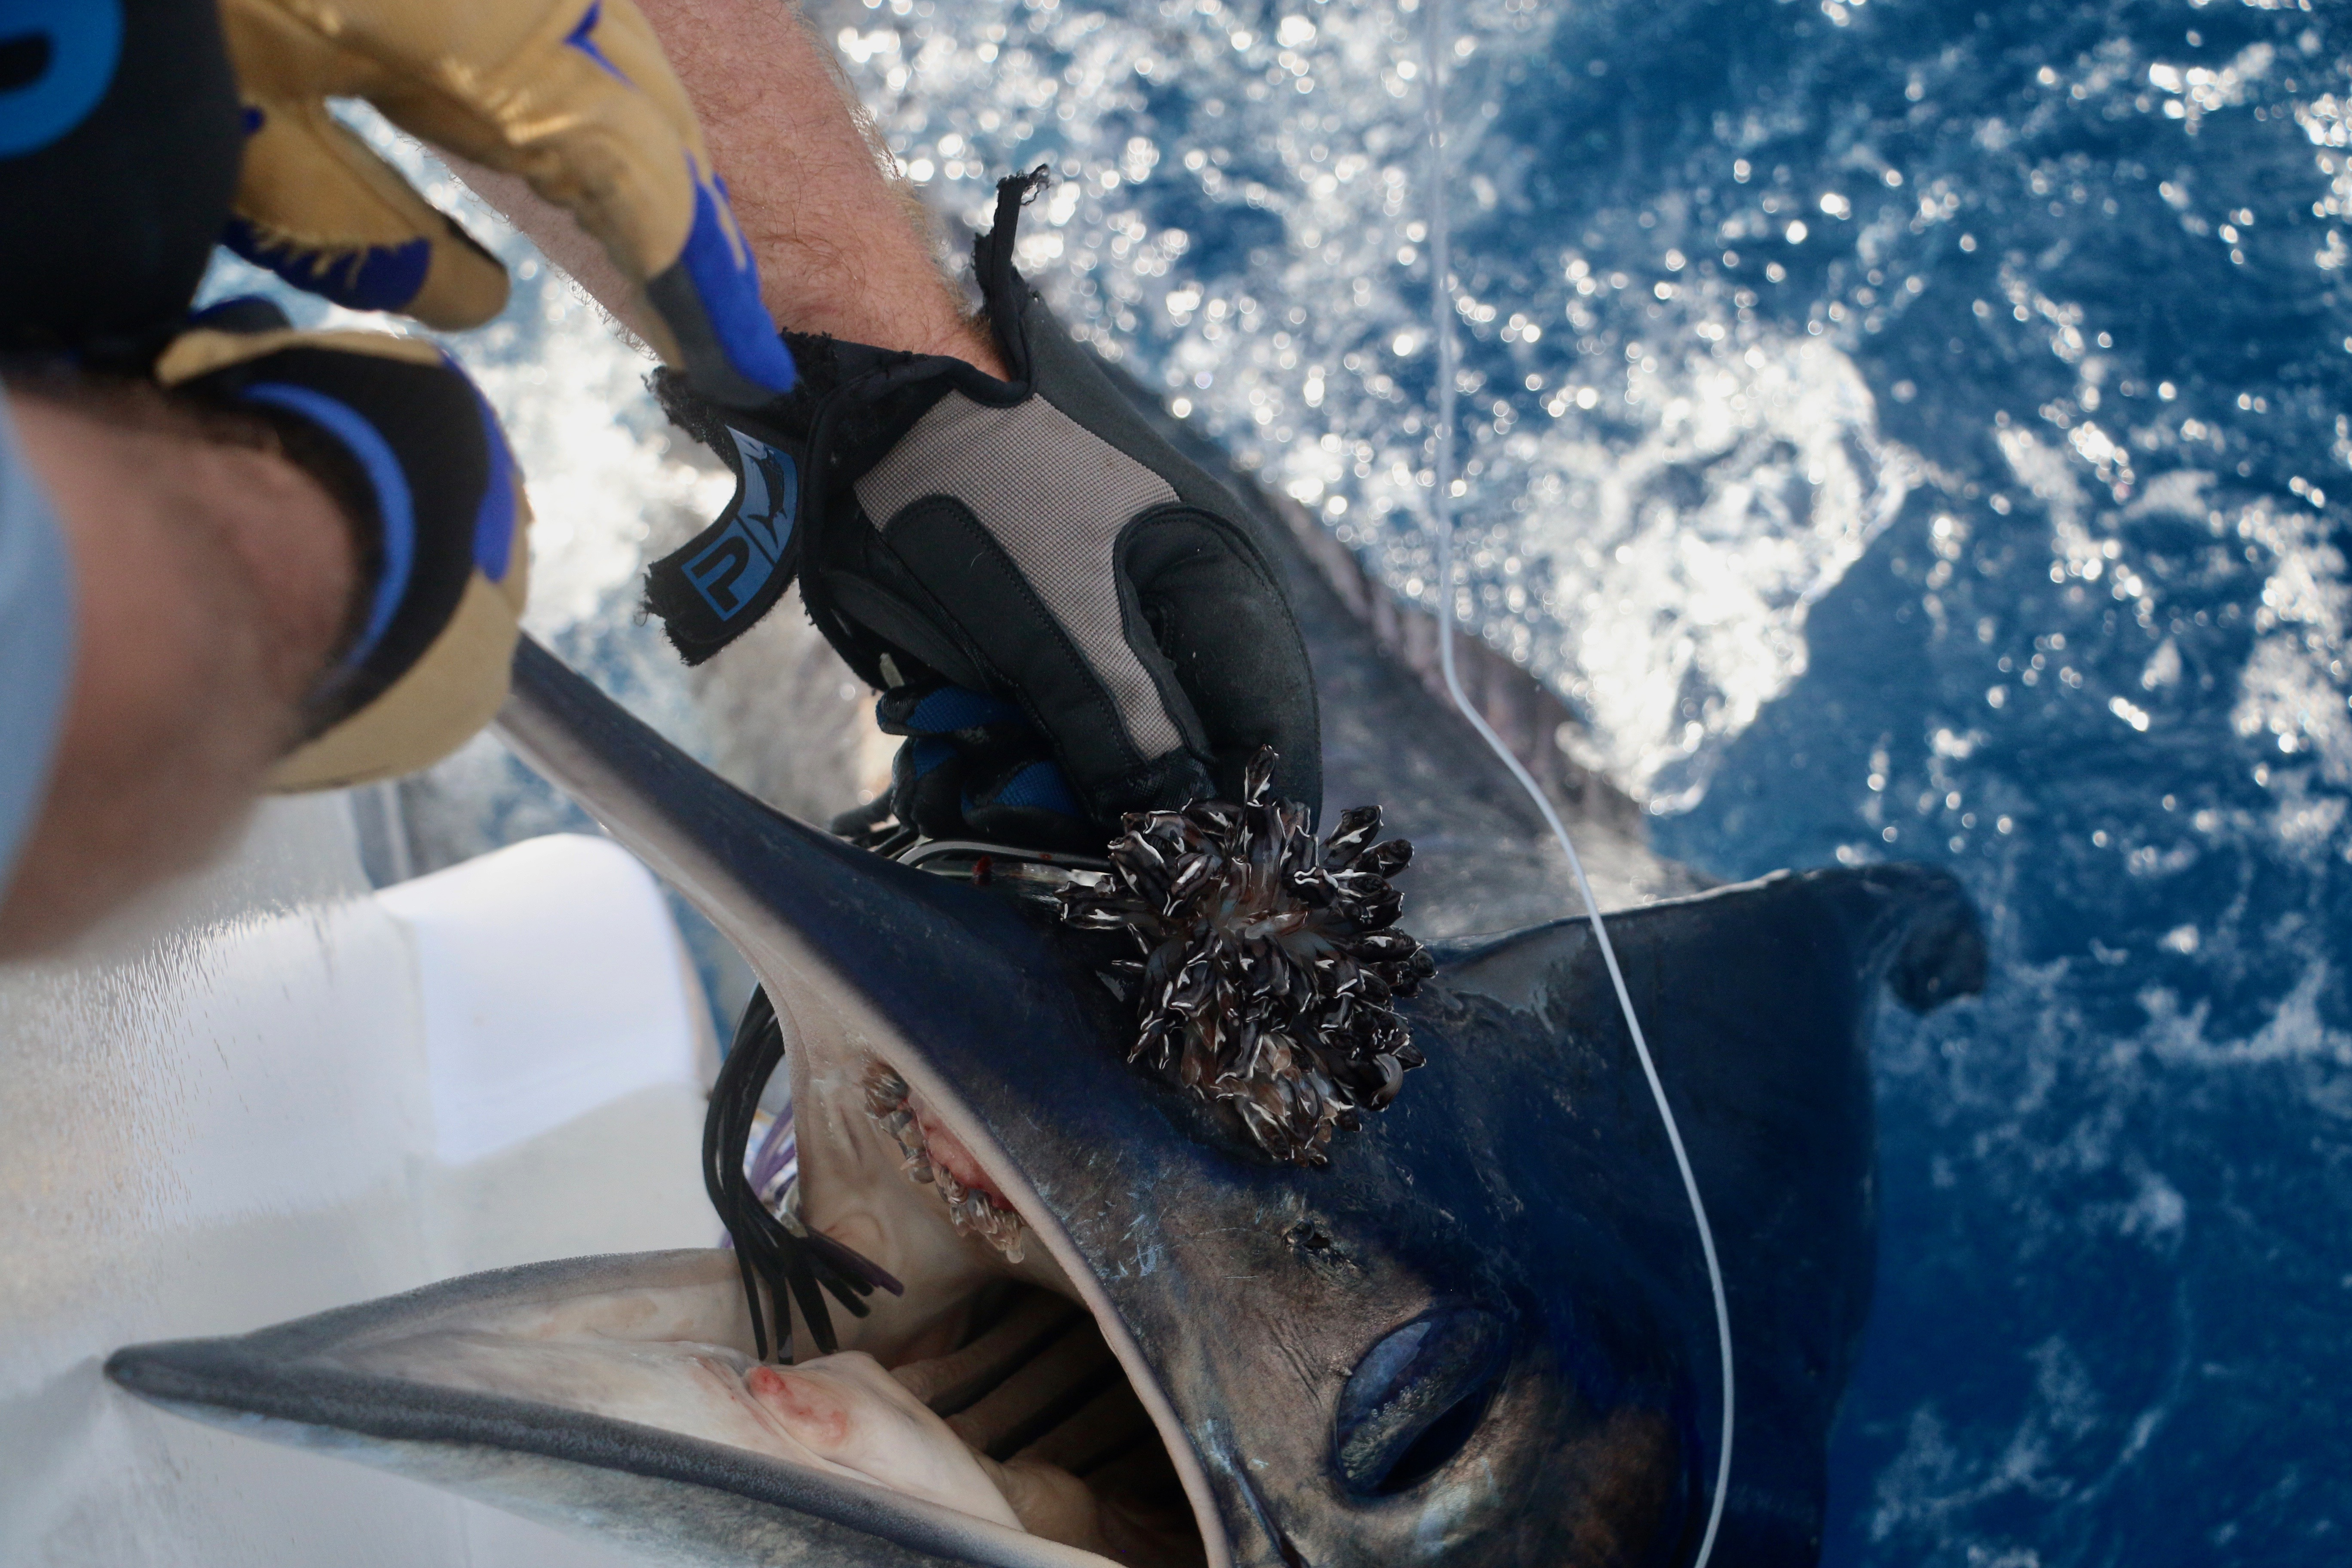 Abnormal growth on striped marlin